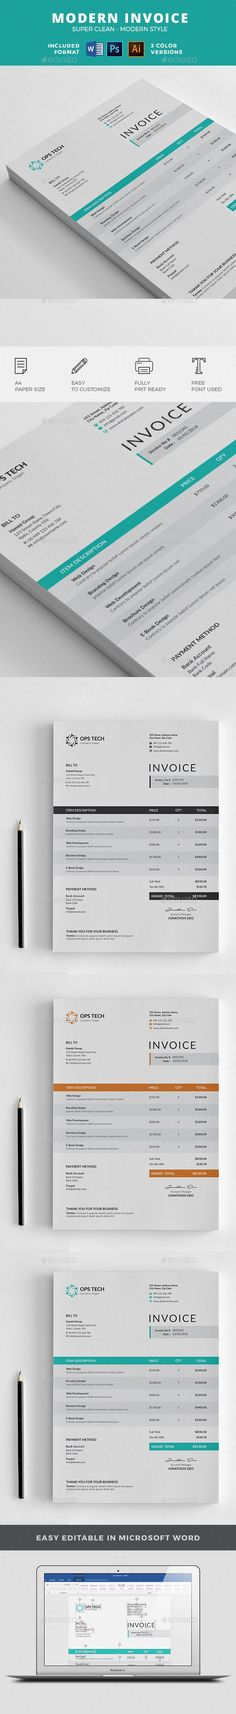 Invoice - product invoice